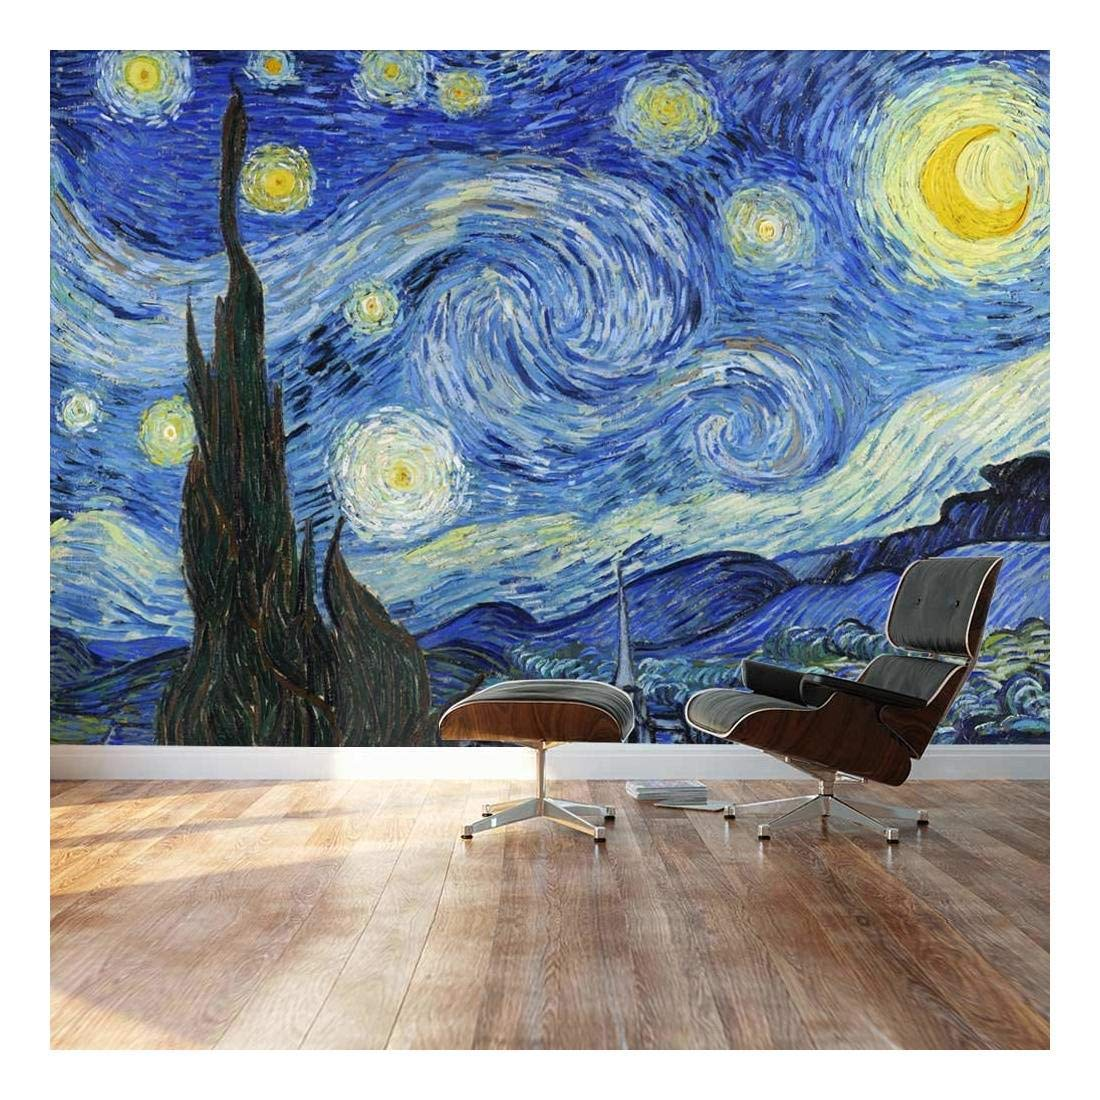 "Wall26 - Large Wall Mural - Famous Oil Painting Reproduction of Starry Night by Vincent Van Gogh | Self-adhesive Vinyl Wallpaper / Removable Modern Decorating Wall Art - 66"" x 96"""